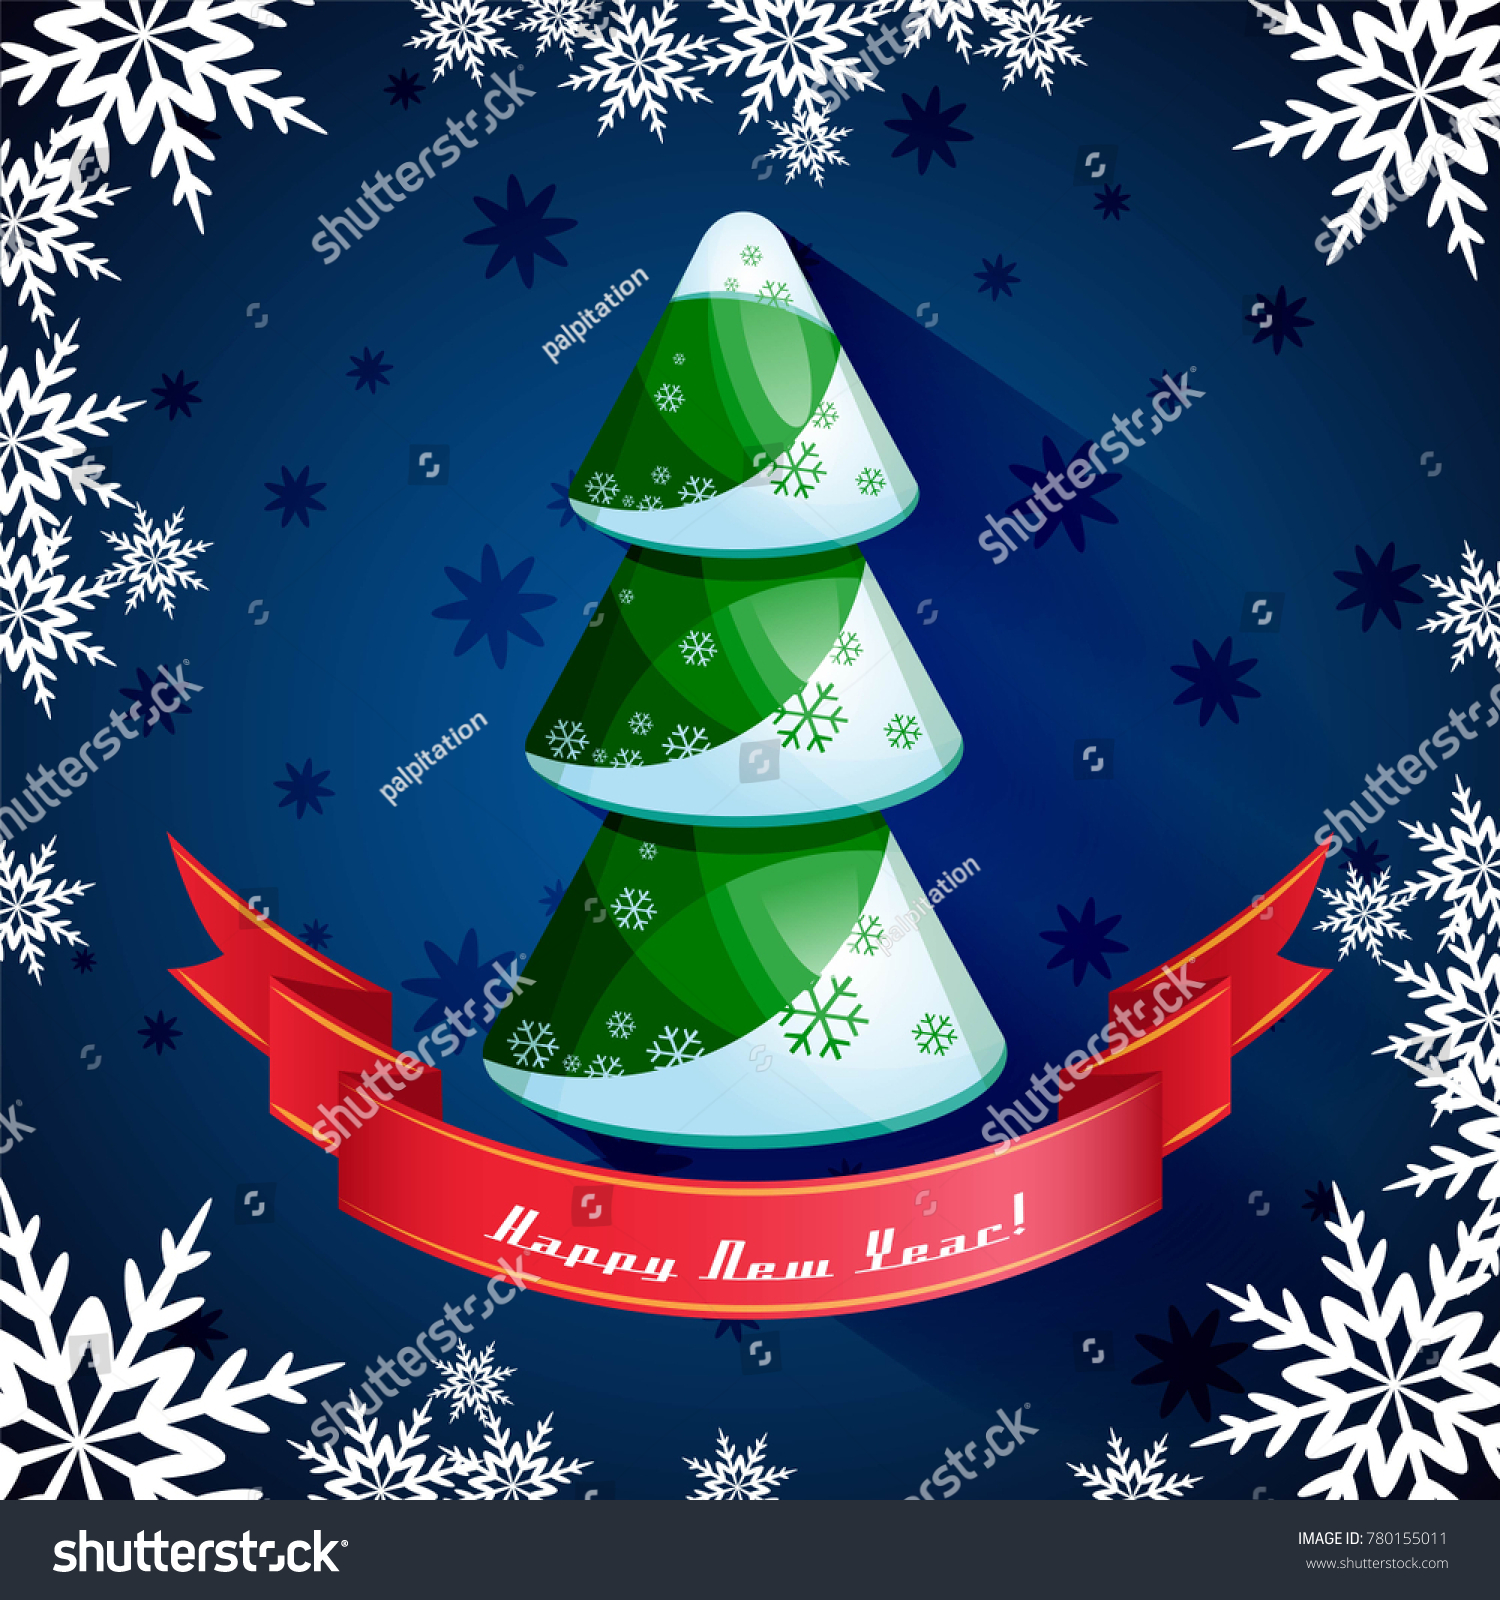 Merry Christmas Happy New Year 2018 Stock Vektorgrafik Lizenzfrei